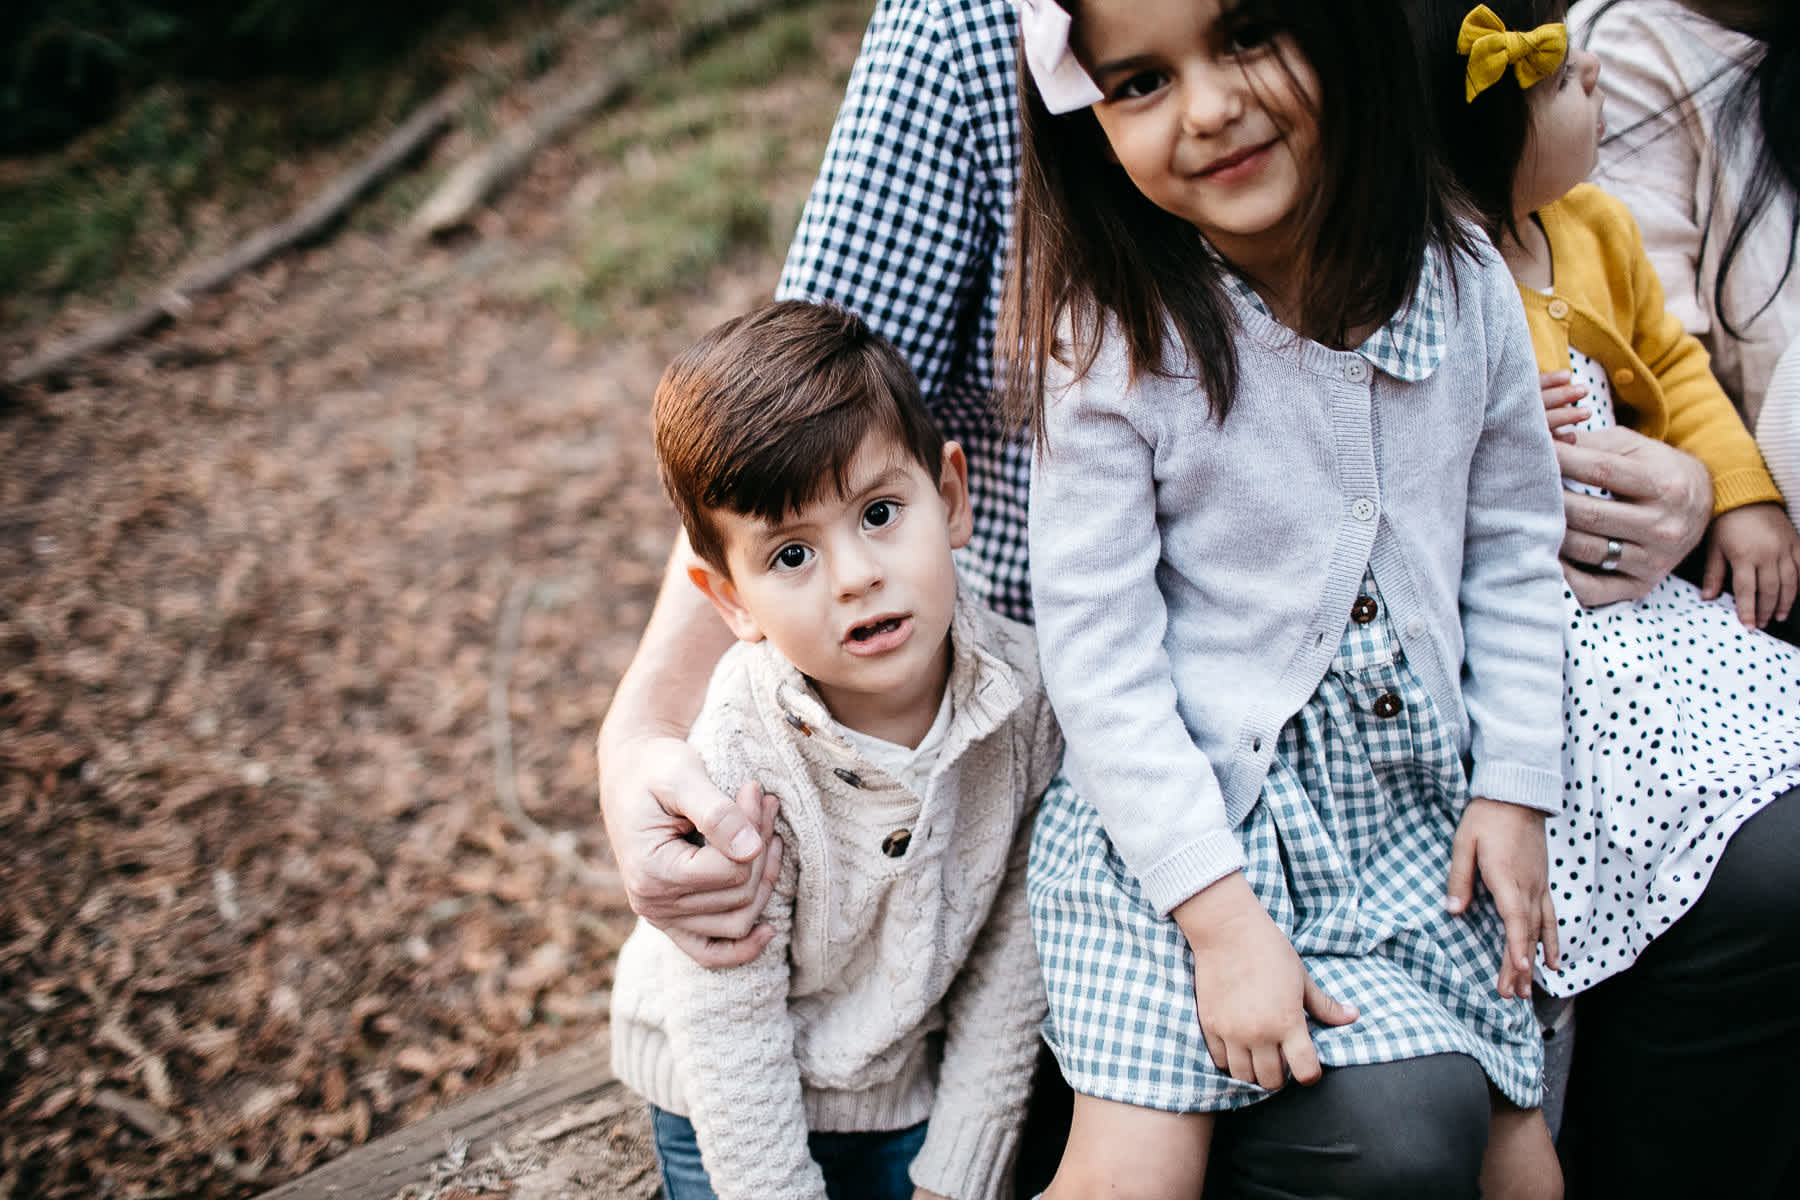 oakland-redwoods-dreamy-big-family-lifestyle-session-31